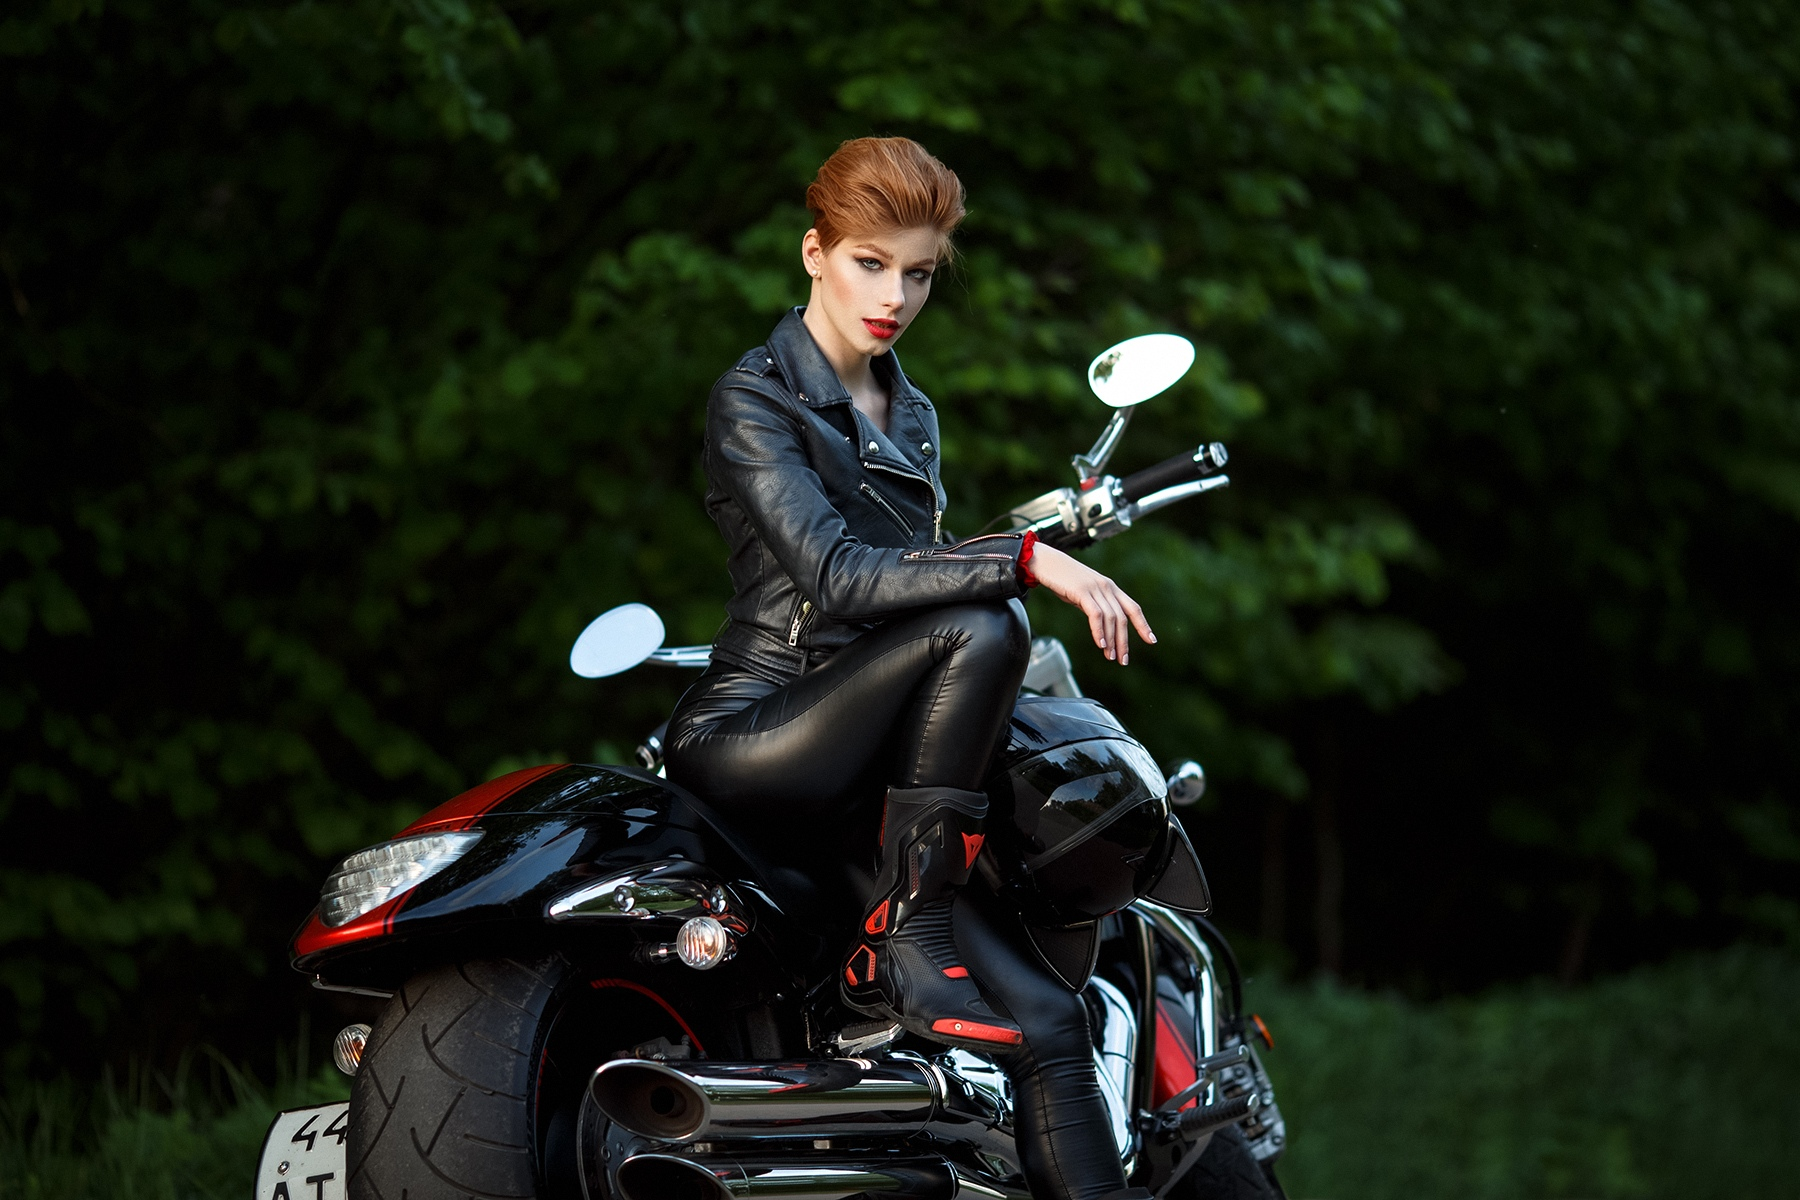 Anastasia Zhilina Women Model Redhead Short Hair Looking At Viewer Red Lipstick Leather Clothing Jac Wallpaper - Resolution:1800x1200 - ID:539657 - wallha.com